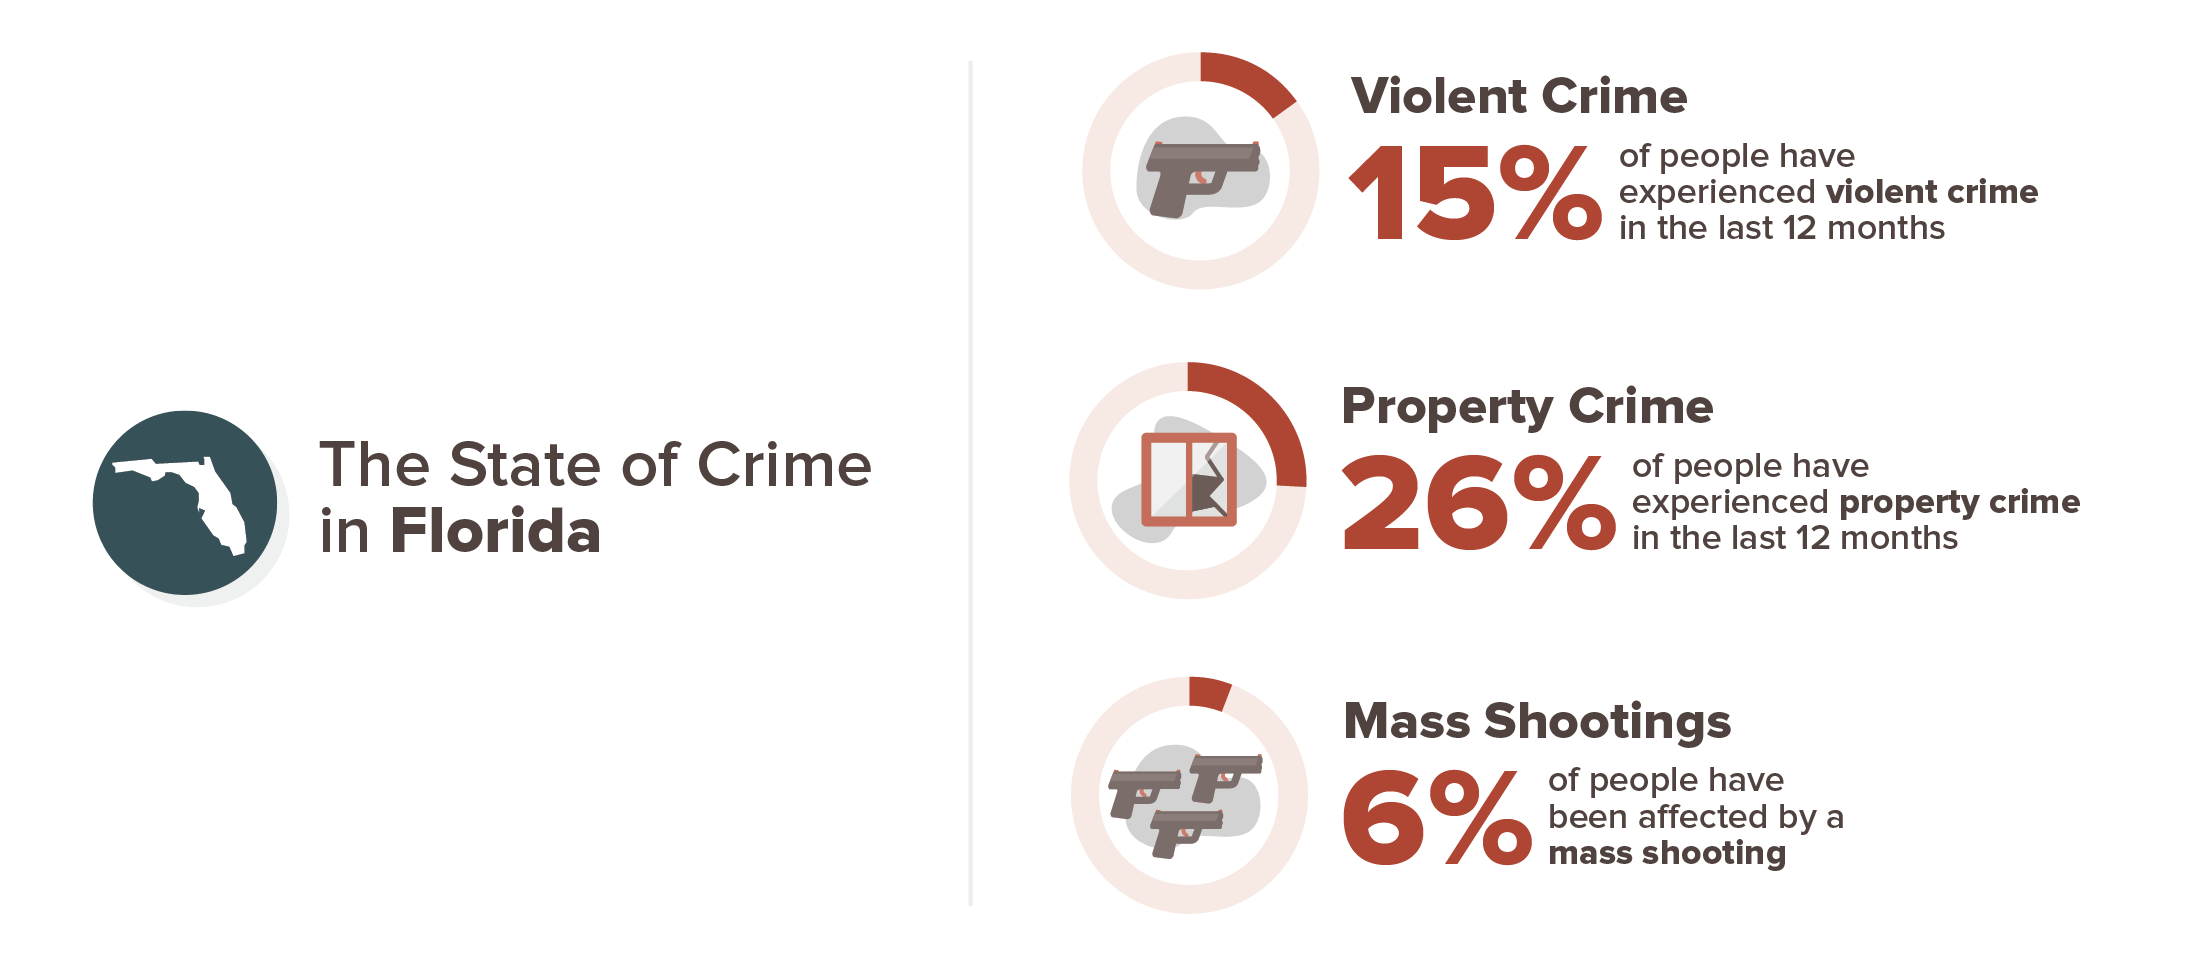 Florida crime experience infographic; 15% violent crime, 26% property crime, 6% mass shooting